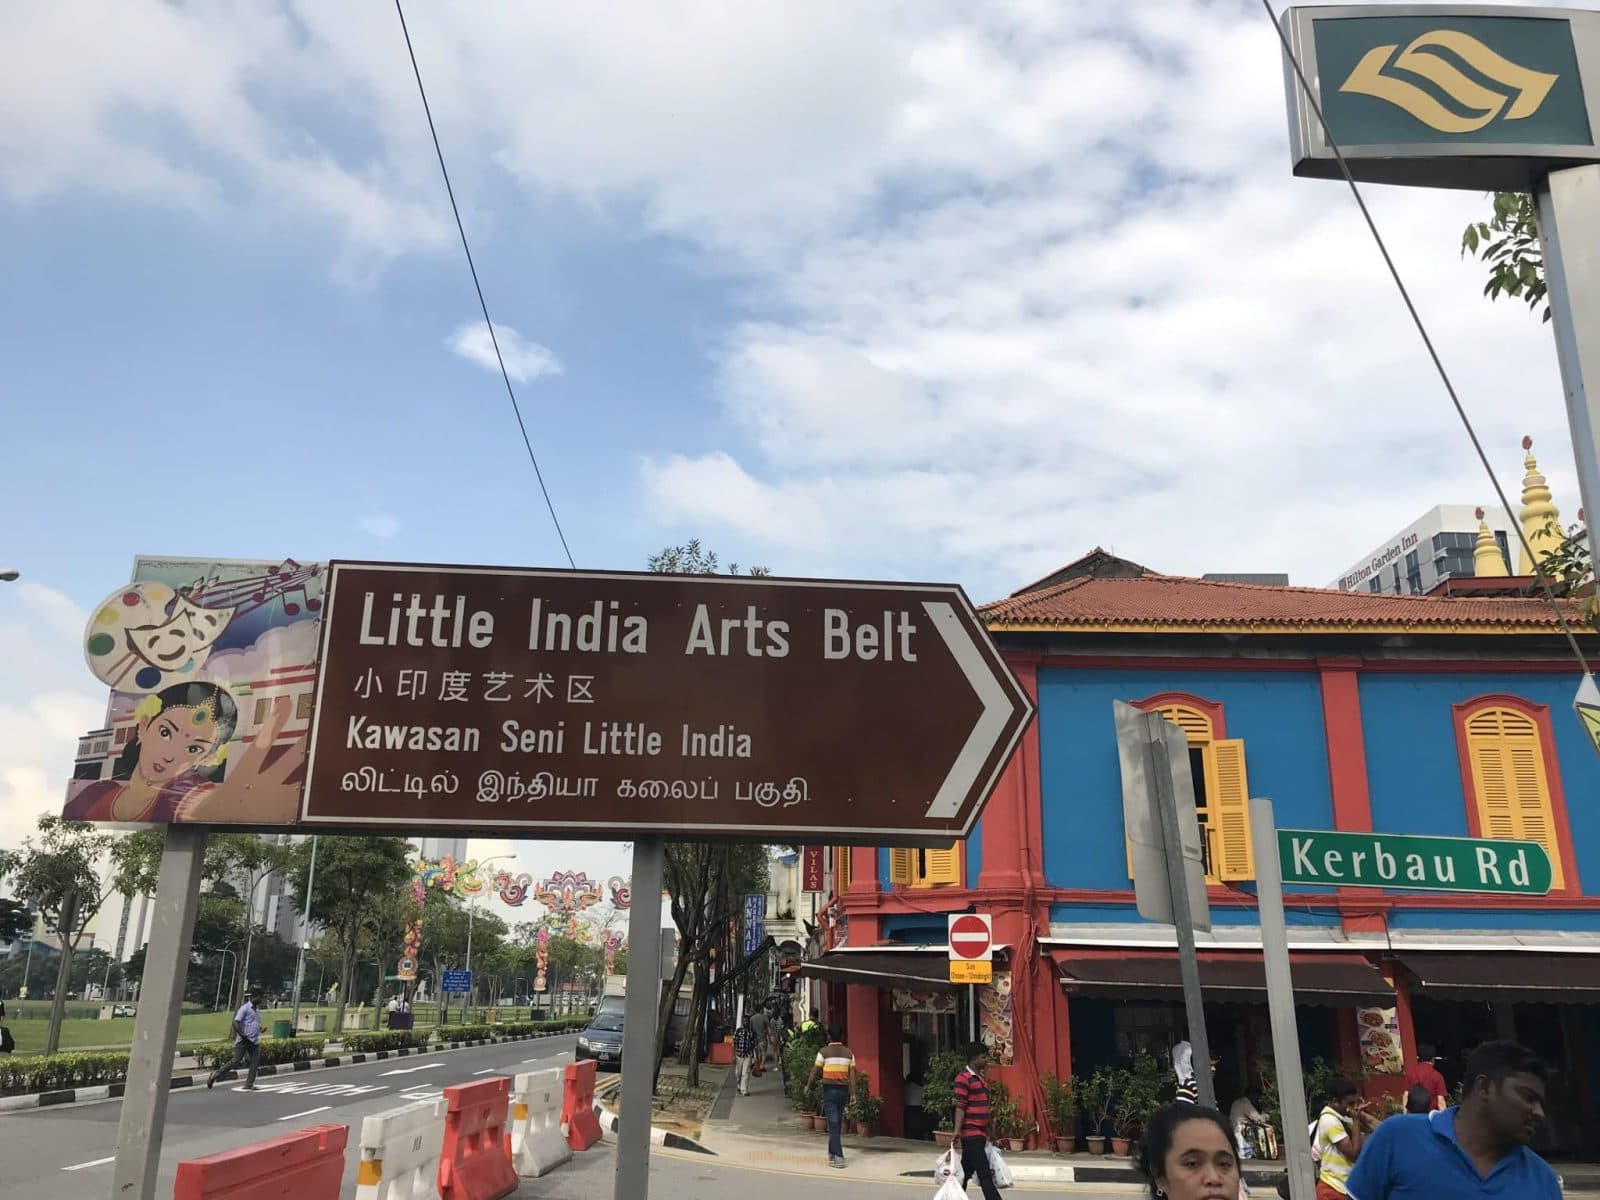 Little India Arts Belt